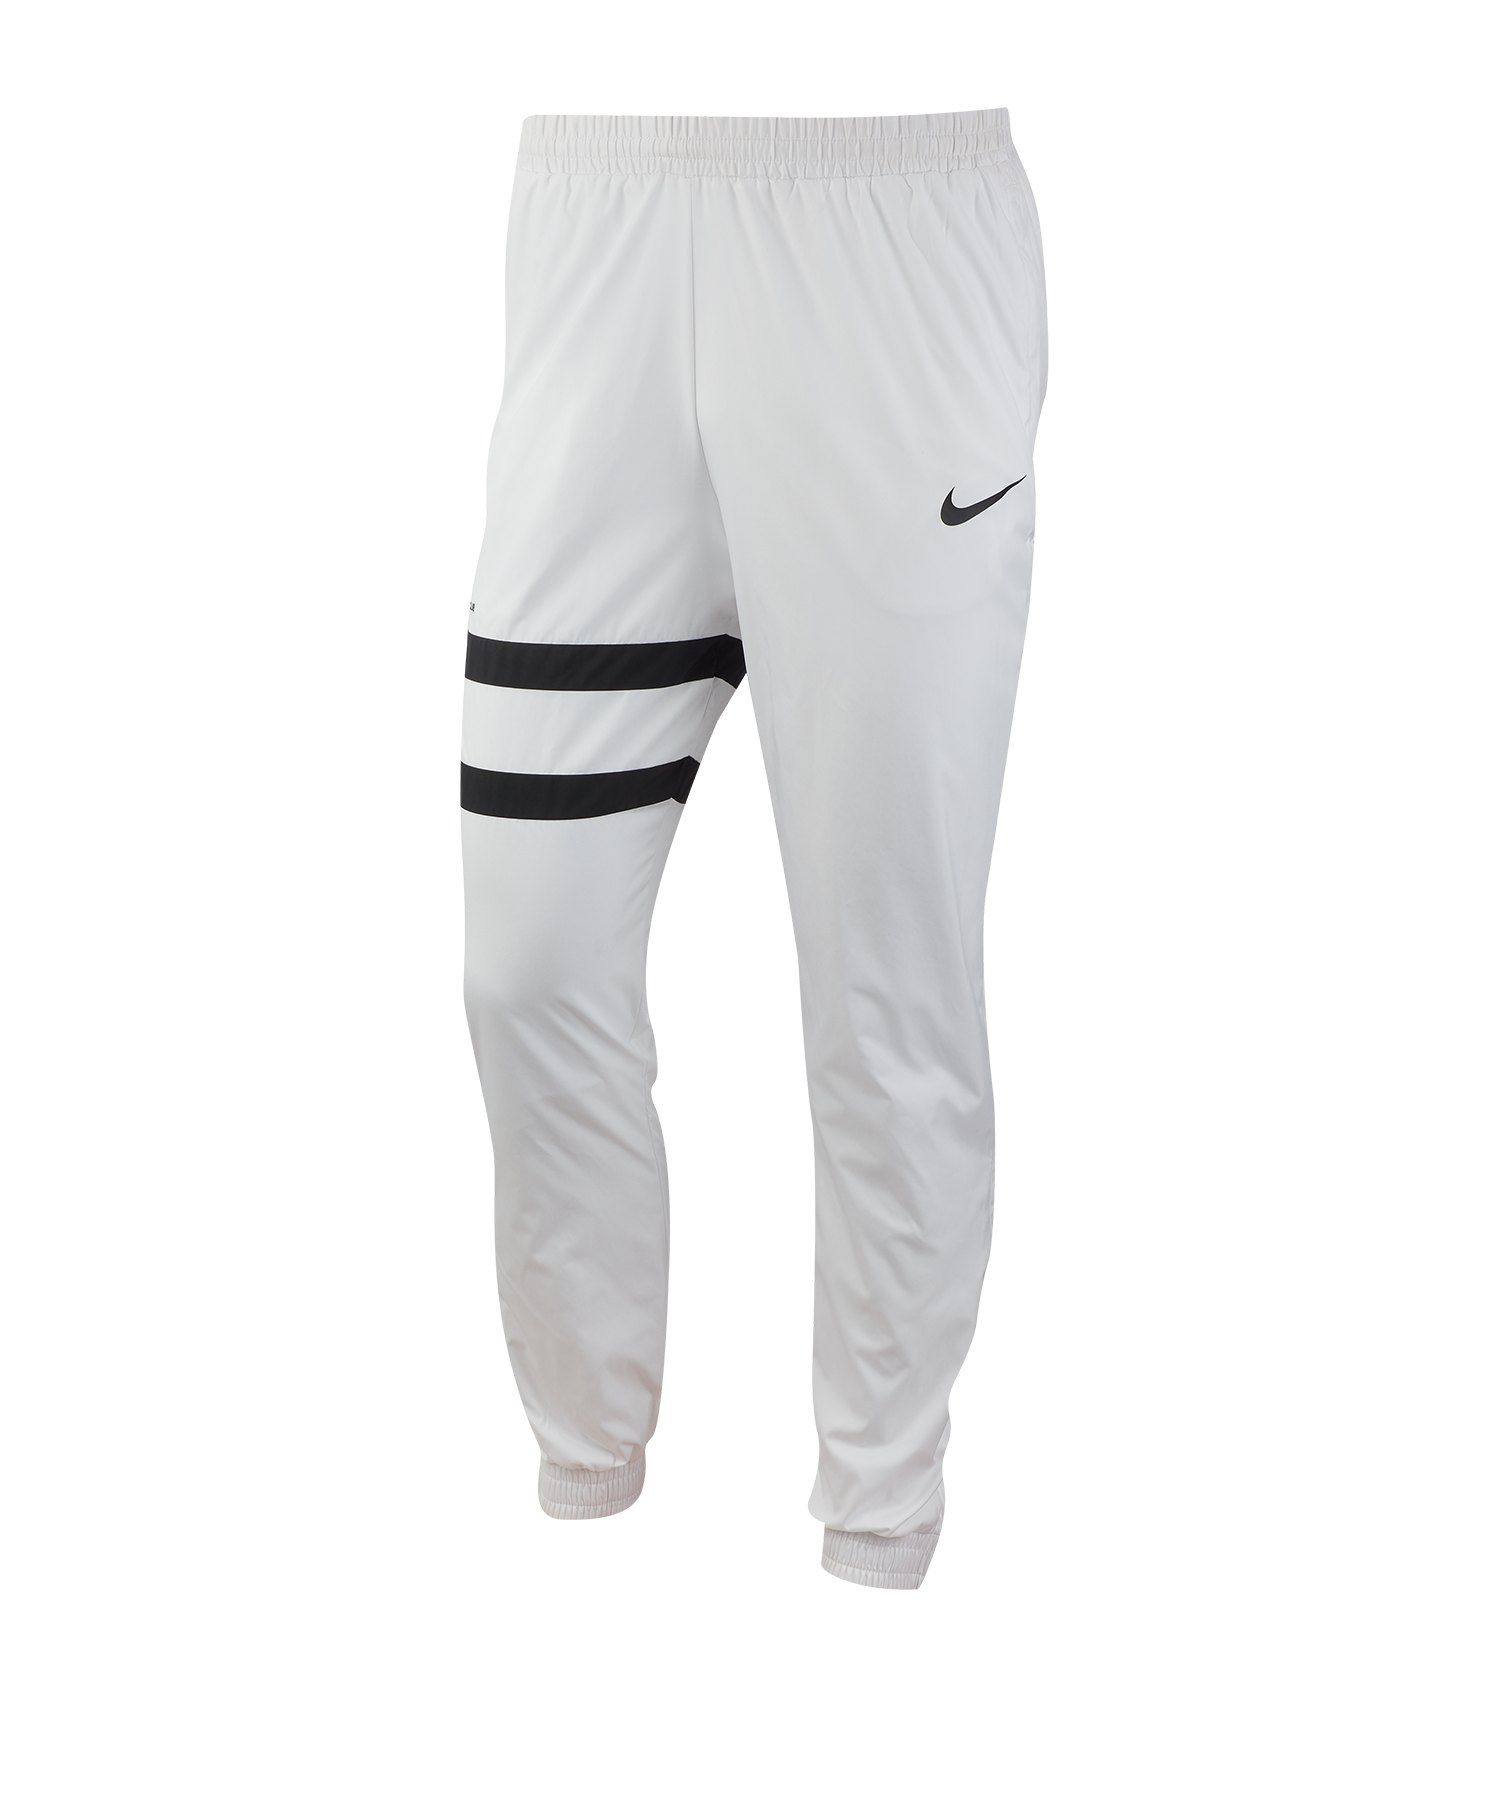 1ac73e27ccf8cf Nike F.C. Track Pant Hose Weiss F100 - weiss